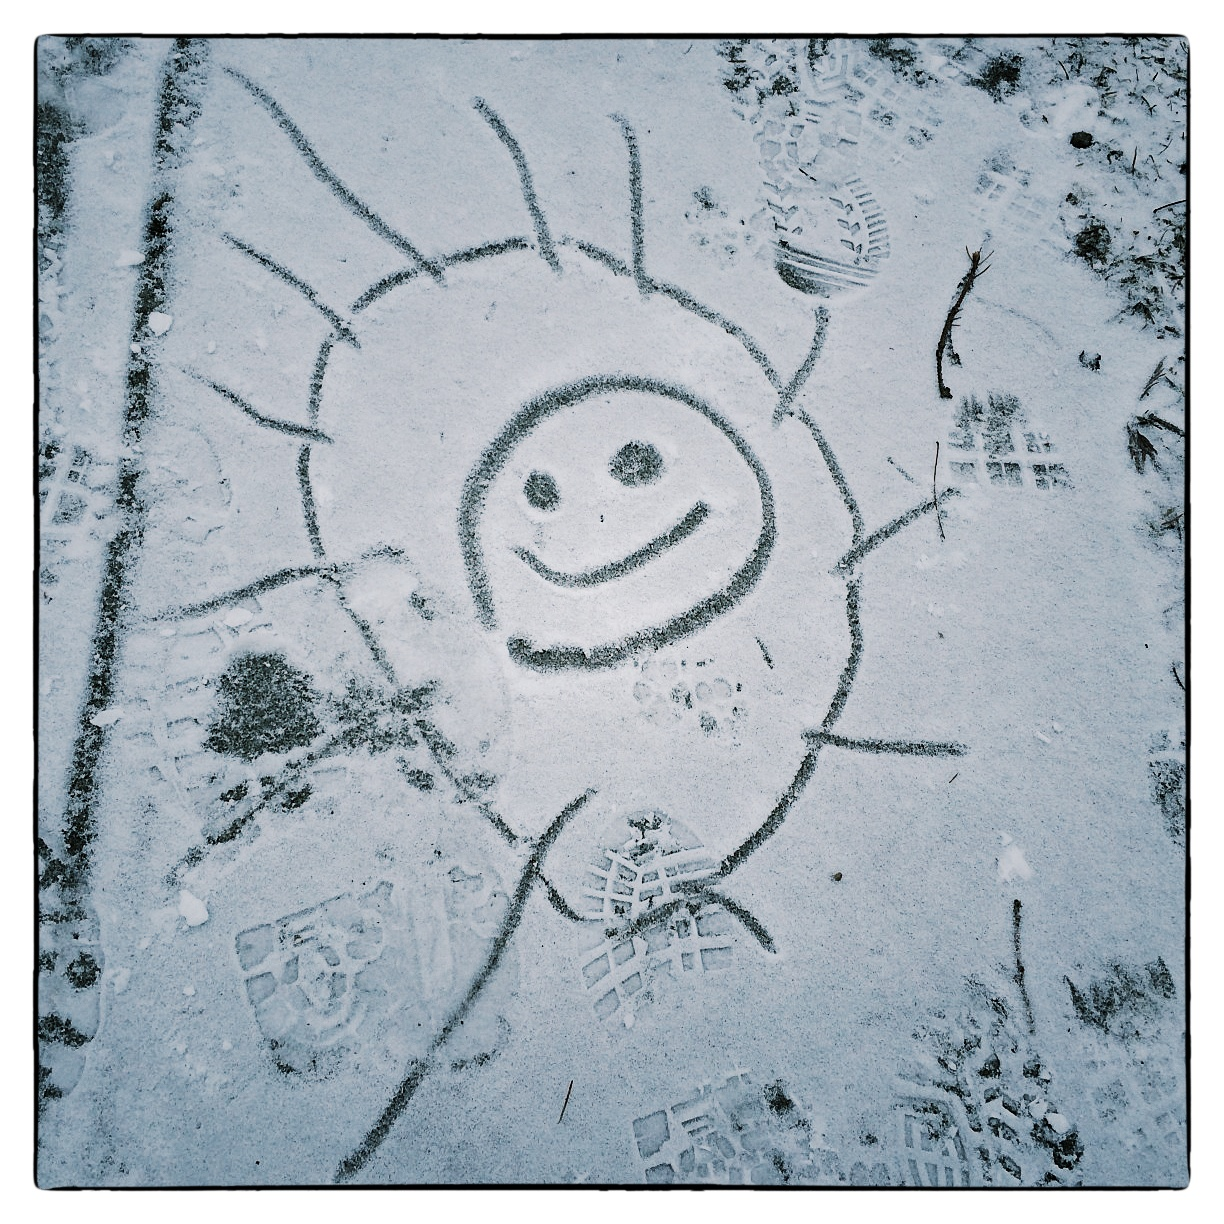 Snow art on the strolling path in Wilcox Park, shot January 2, 2014.